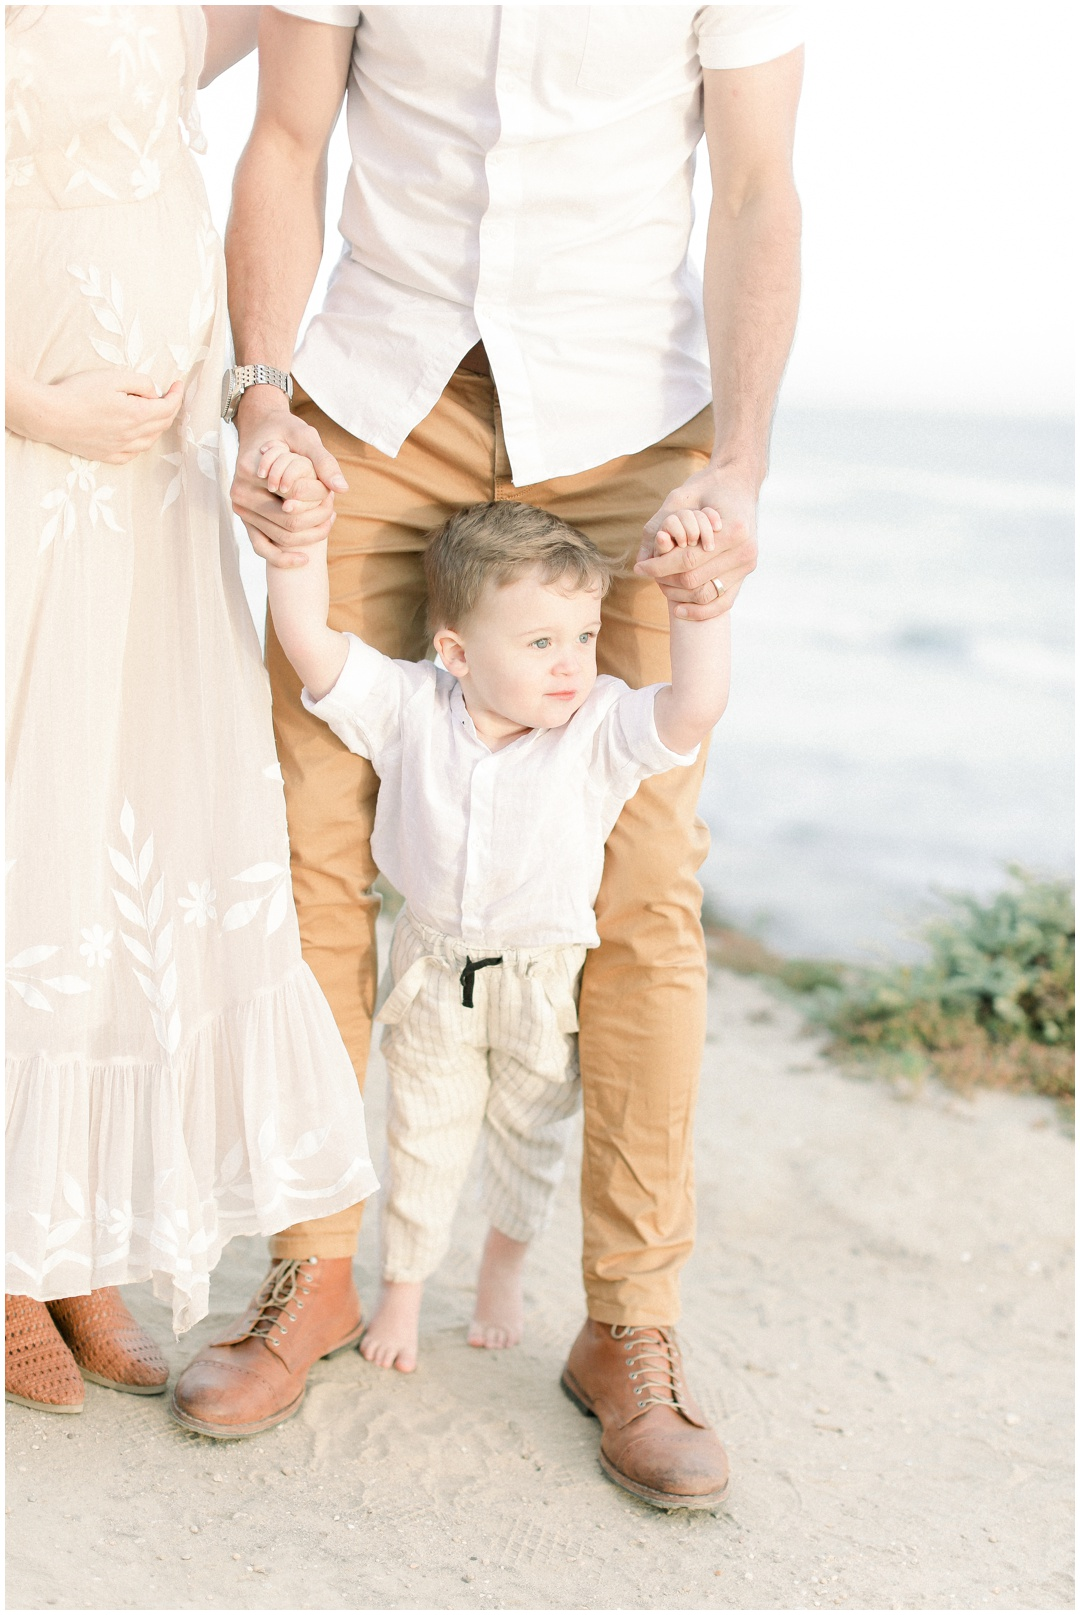 Newport_Beach_Newborn_Light_Airy_Natural_Photographer_Newport_Beach_Photographer_Orange_County_Family_Photographer_Cori_Kleckner_Photography_Huntington_Beach_Photographer_Family_OC_Newborn_Danielle_Lawley_Parker_Maternity_Family_Jordan_Lawley_3349.jpg